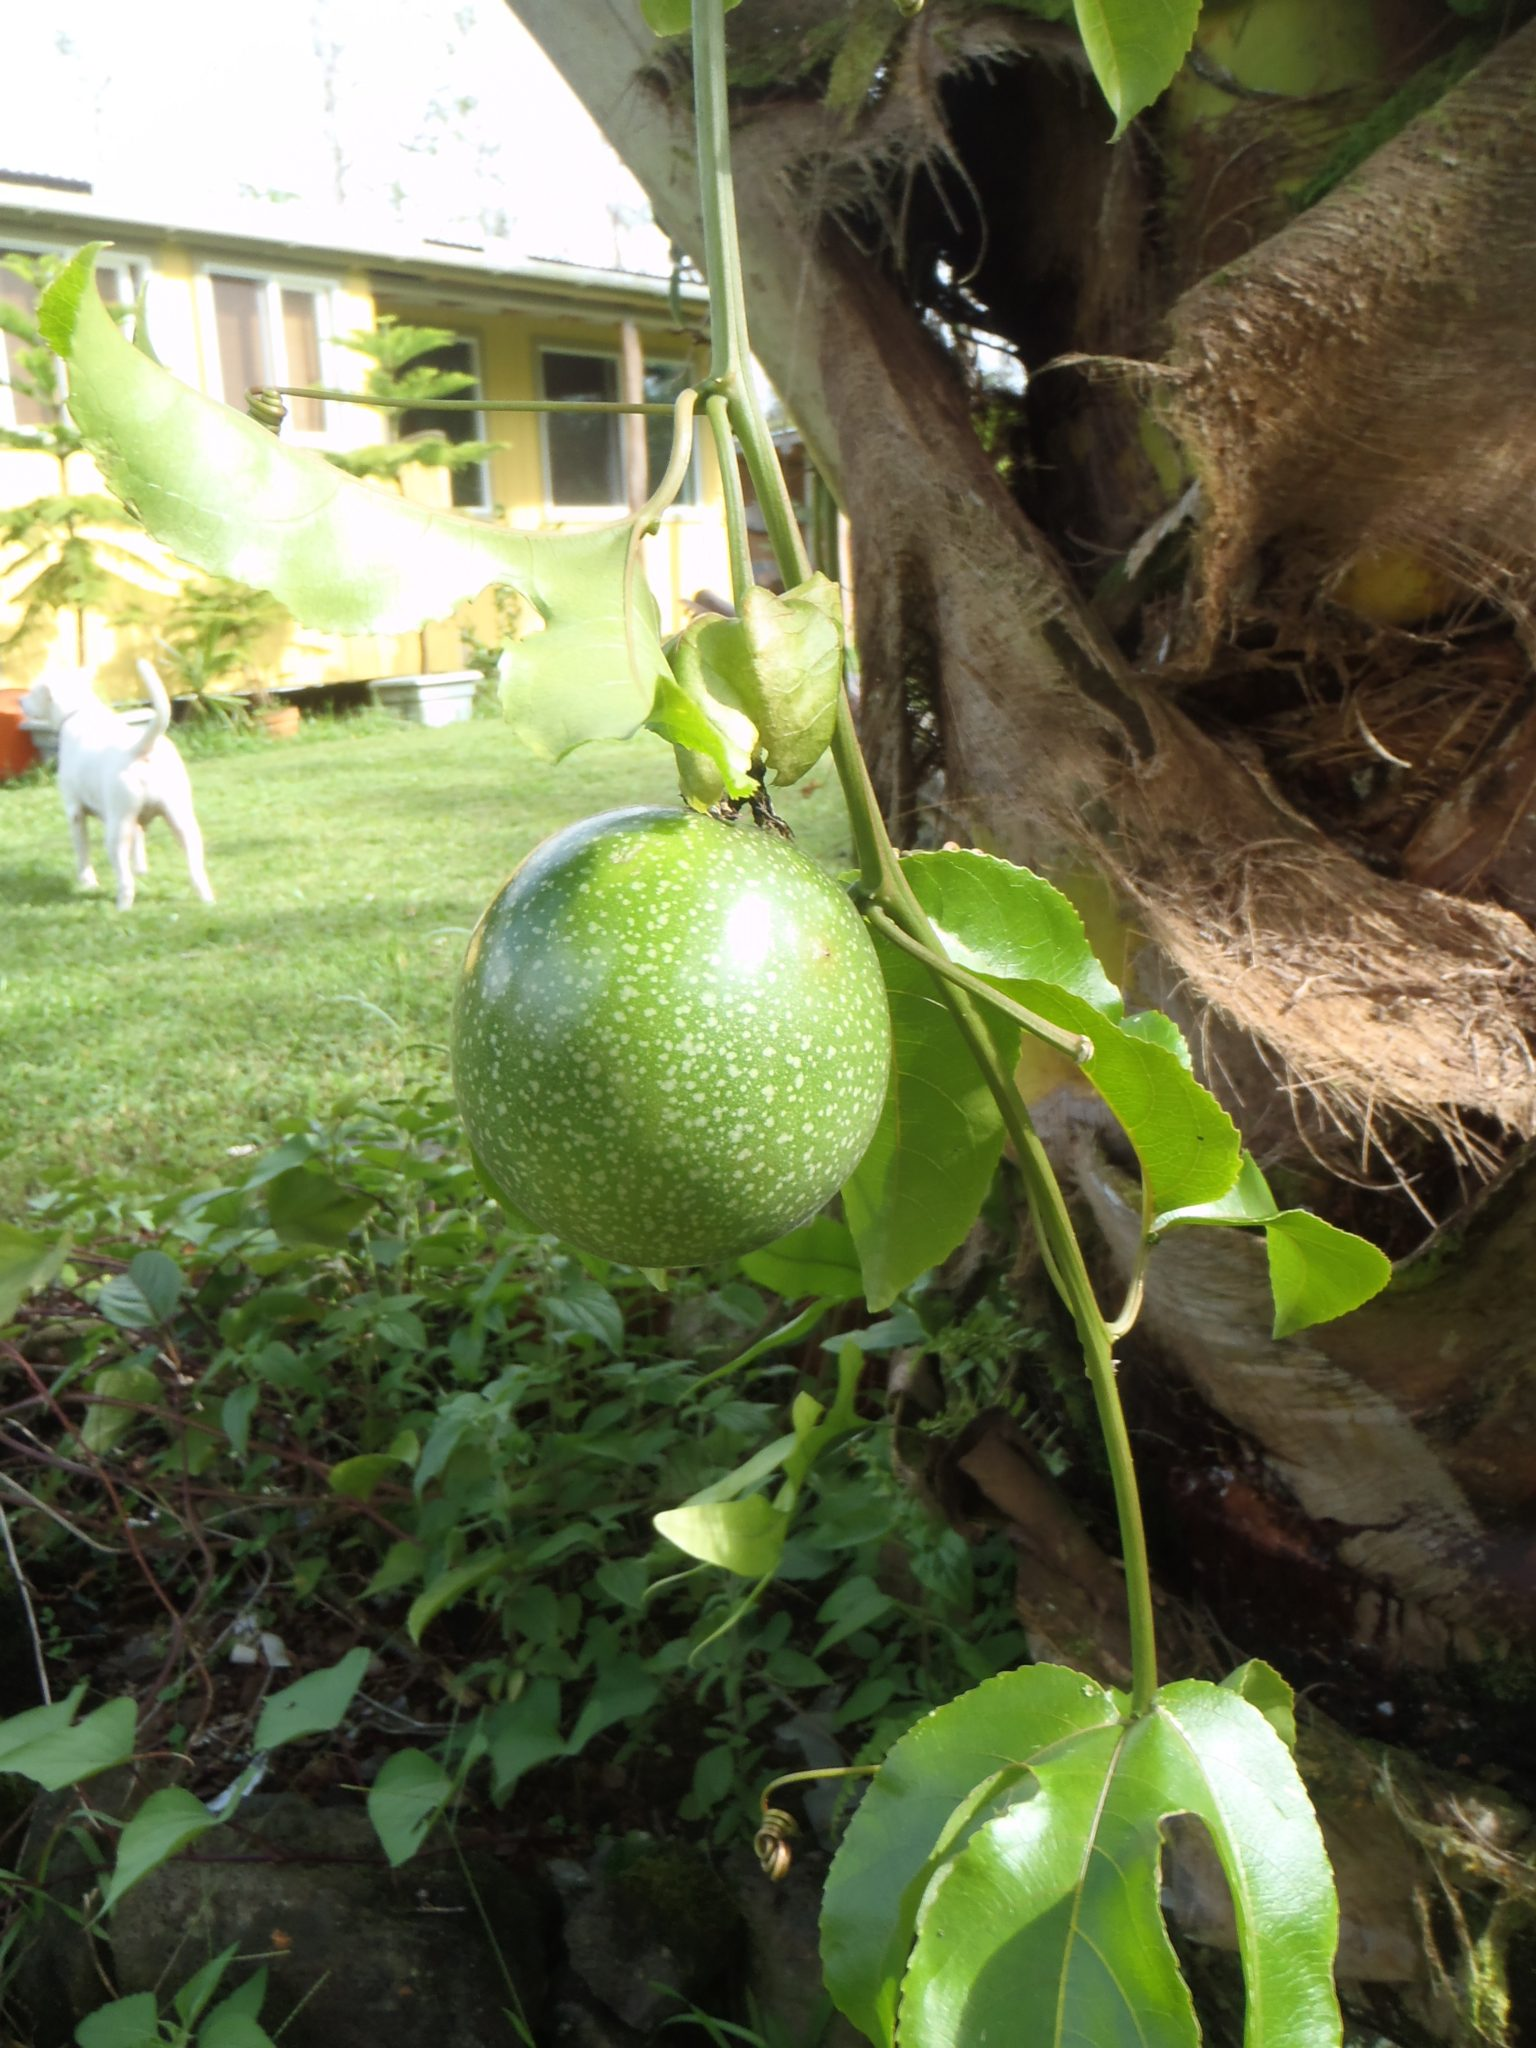 Lilikoi fruit (passionfruit) on vine hanging from palm tree, with house and dog in background